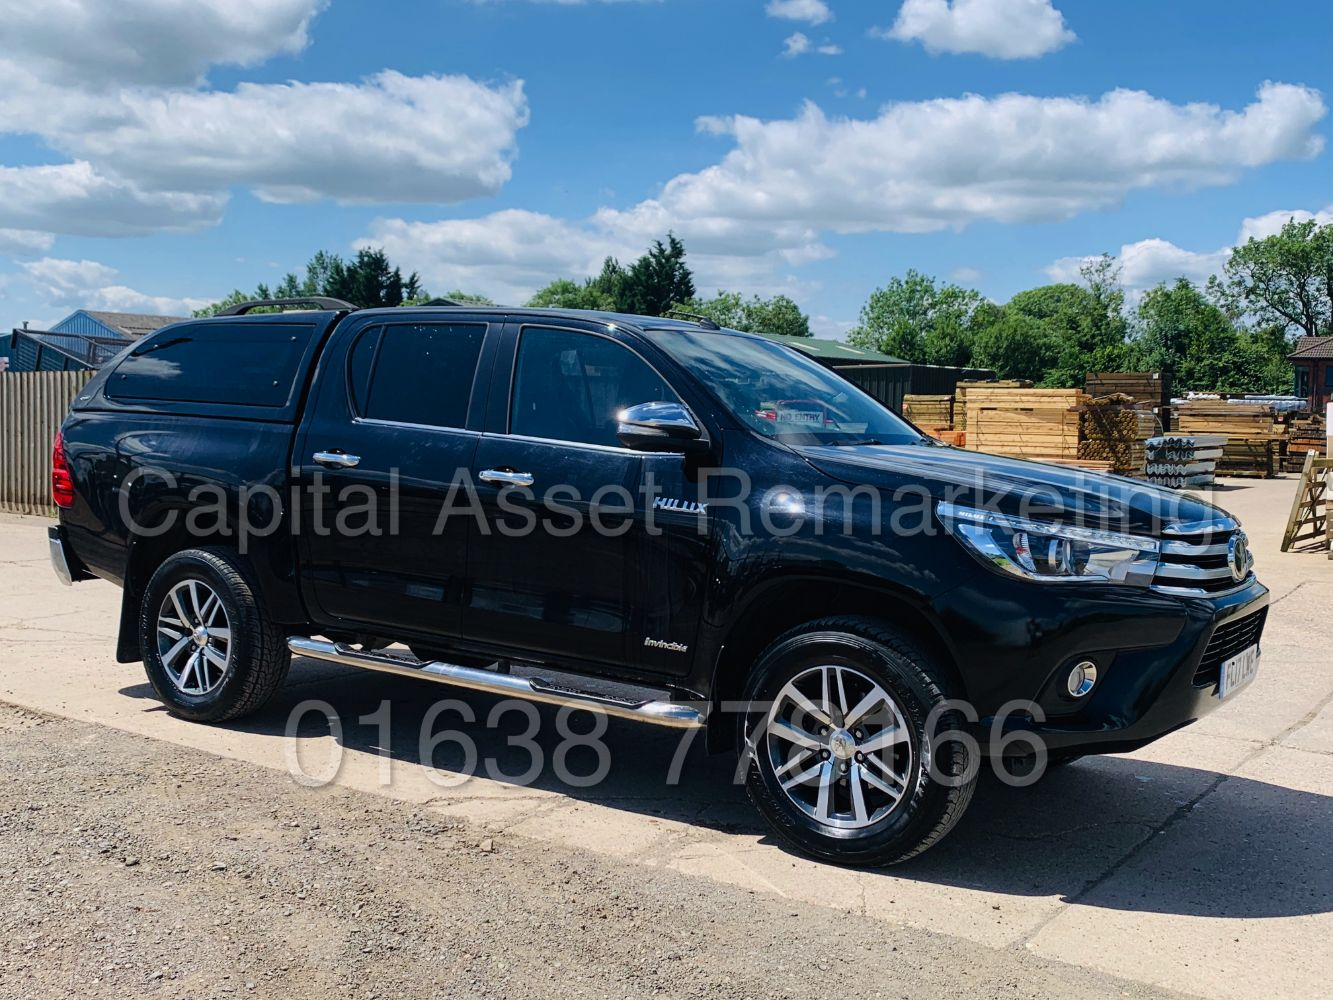 """2017 TOYOTA HILUX INVINCIBLE AUTO - VW CADDY 2017 - PEUGEOT PARTNER 2018 - RENAULT MASTER """"AUTO"""" LUTON 2016 -  A GOOD SELECTION OF LATE VANS"""